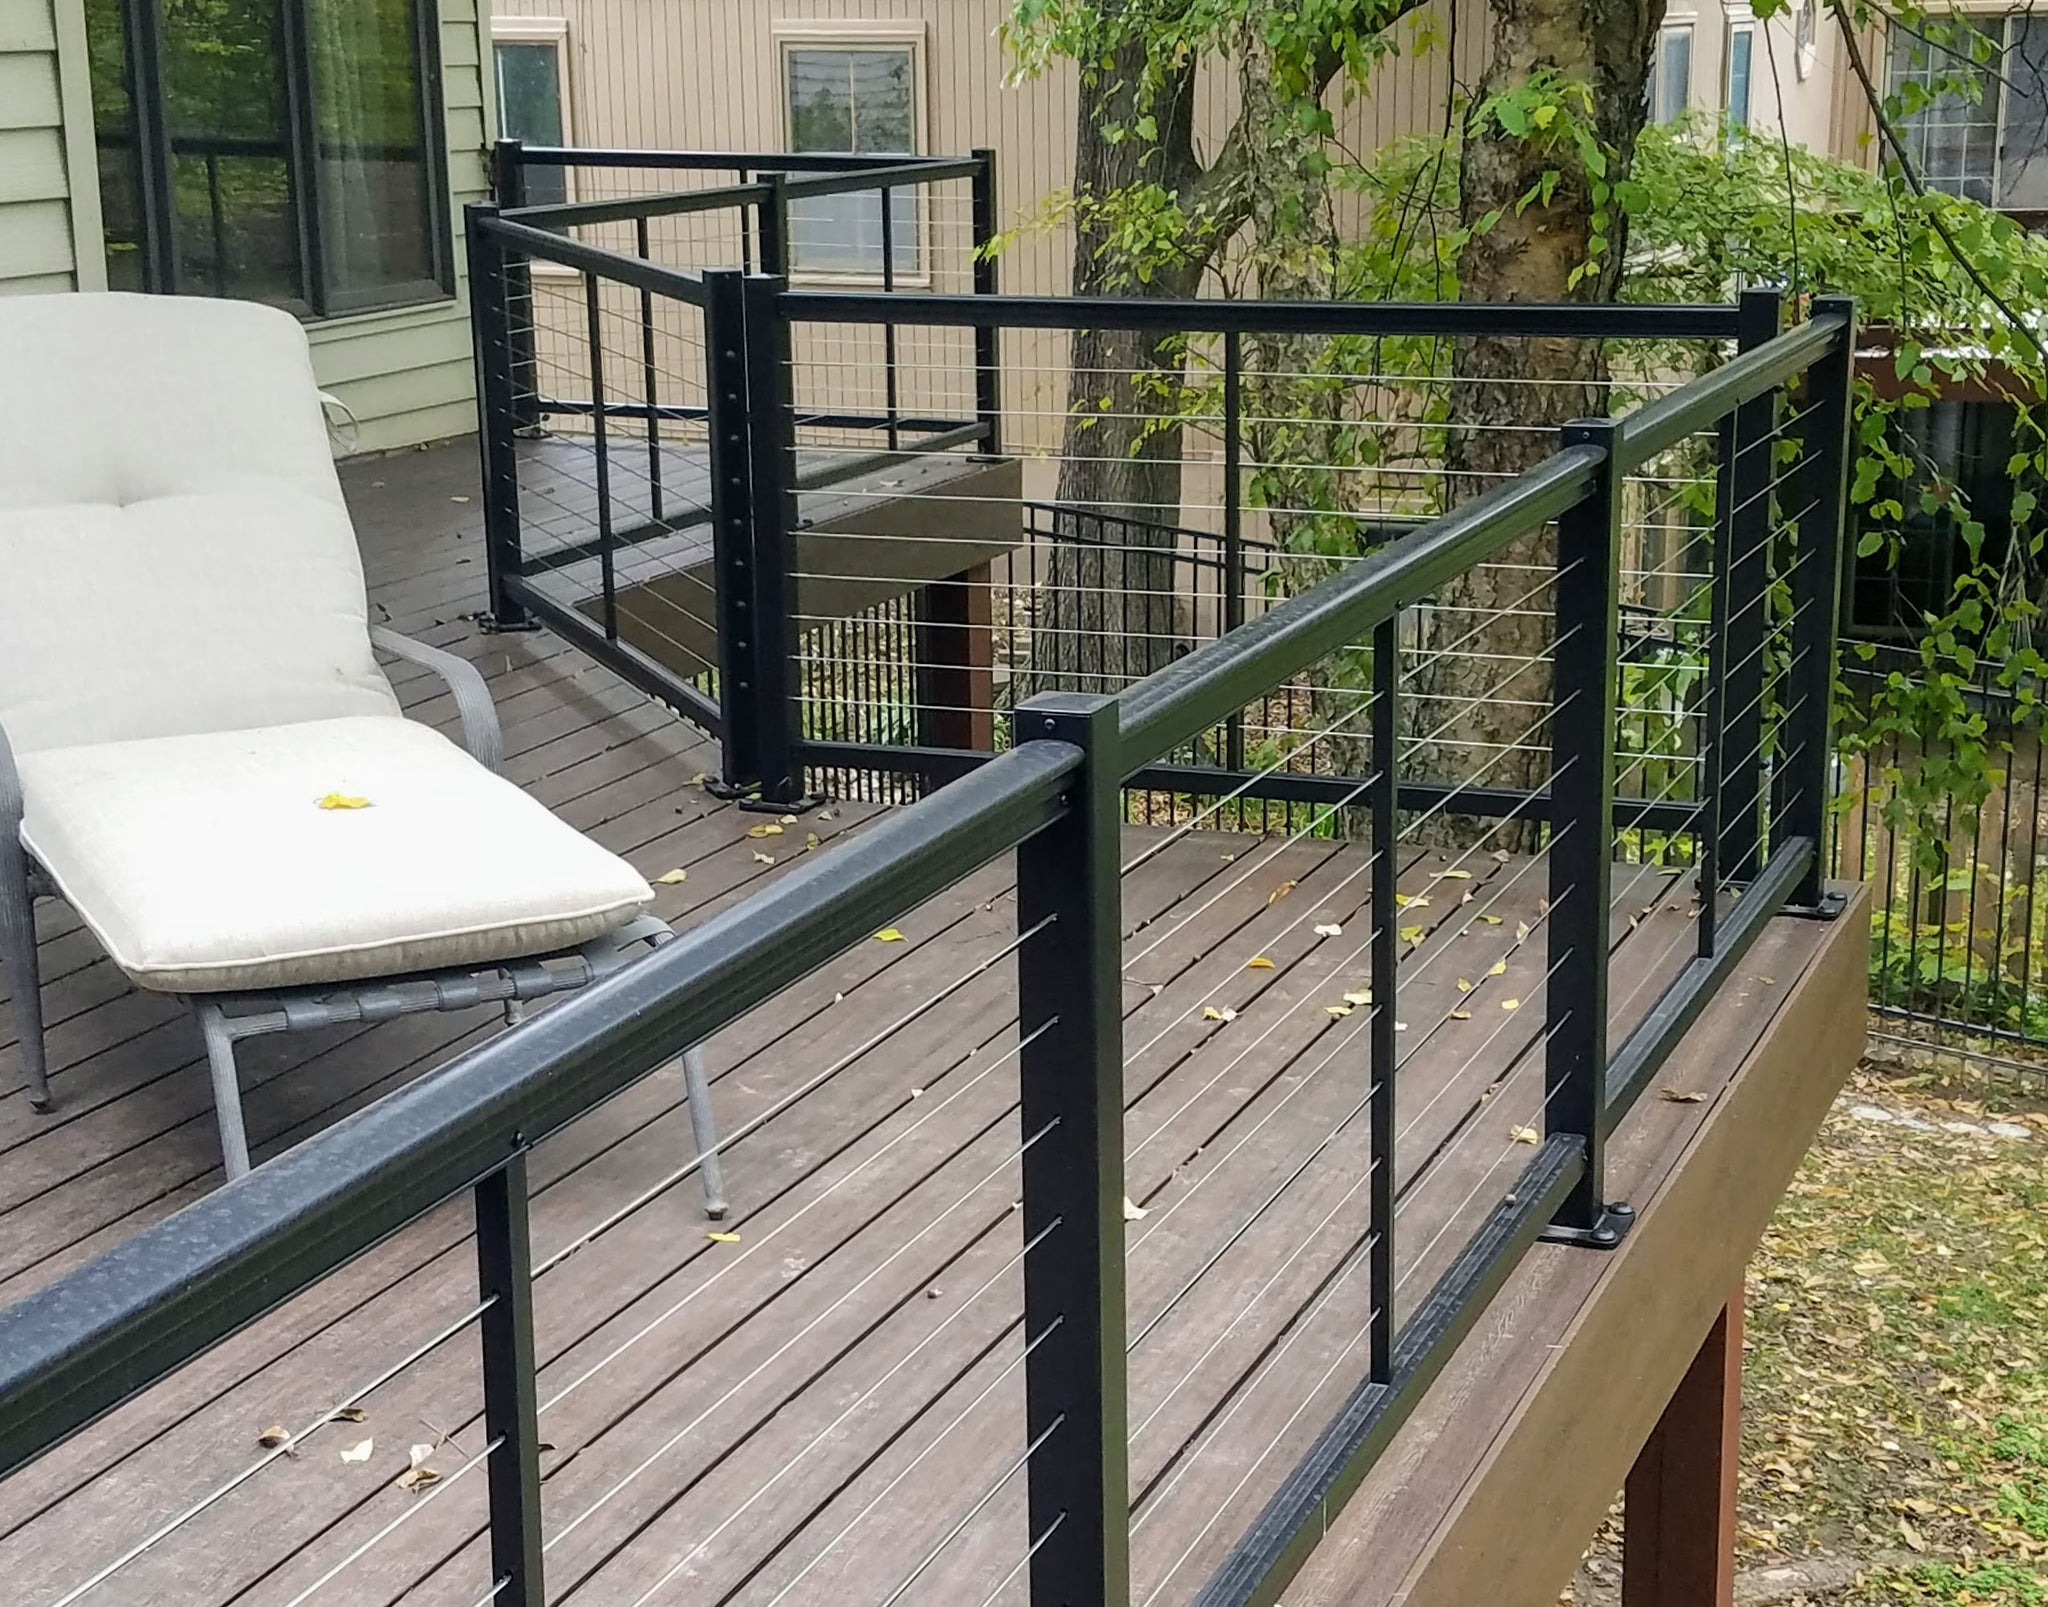 DesignRail Kits by Feeney built by Acumen Renovations in black  horizonatal cable handrail system deck wire from feeney inc